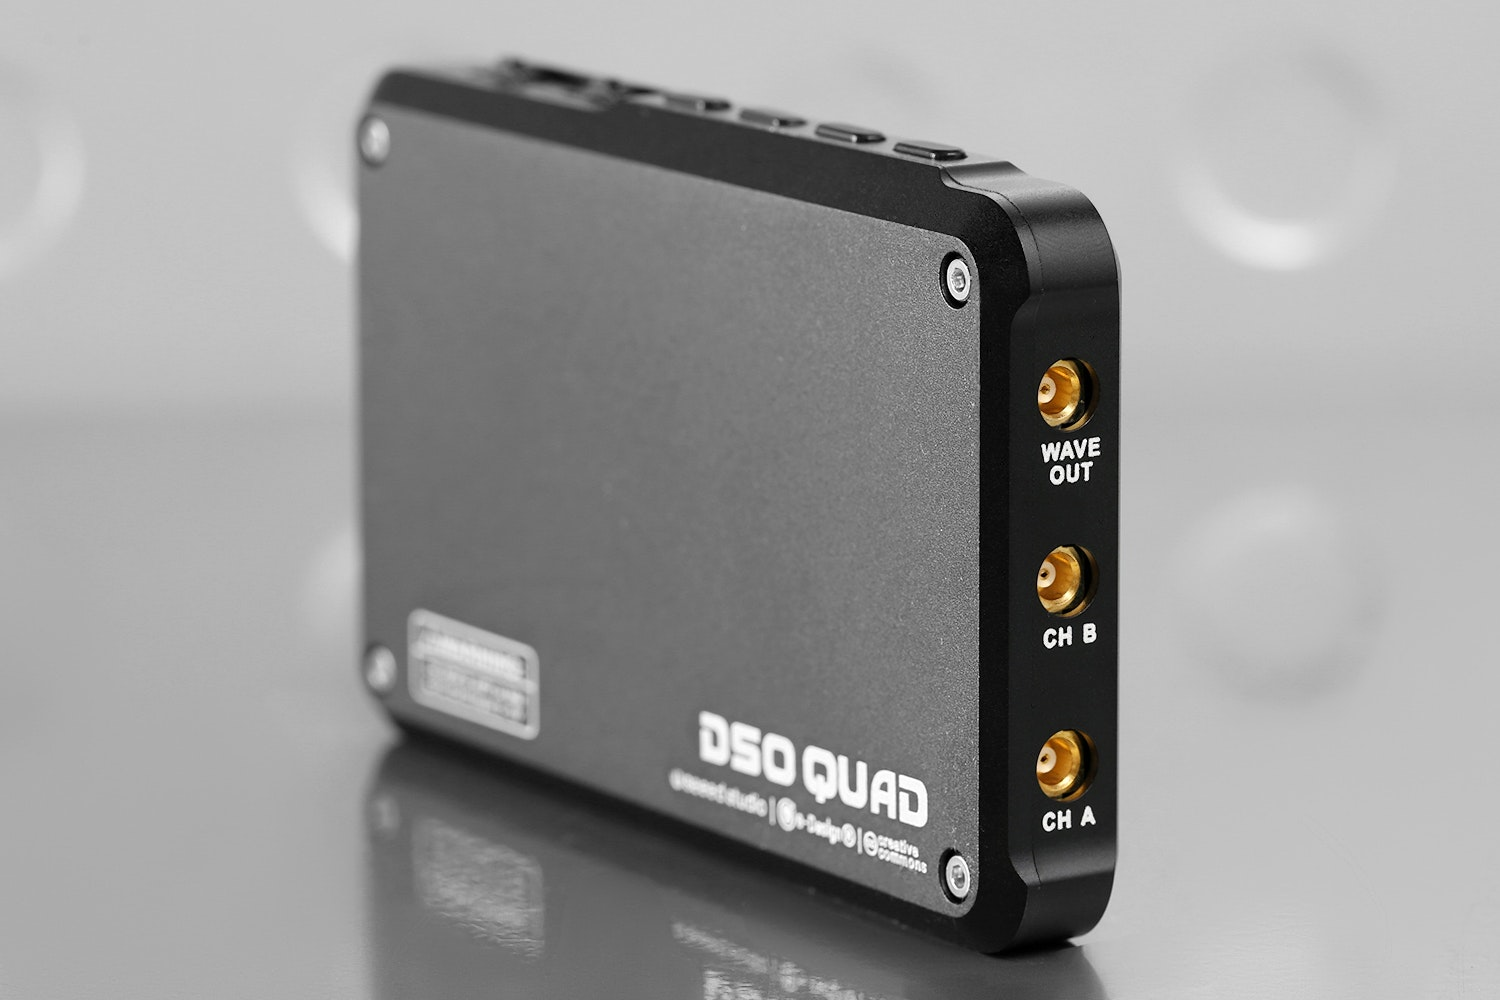 Seeed DSO Quad Pocket Size Oscilloscope